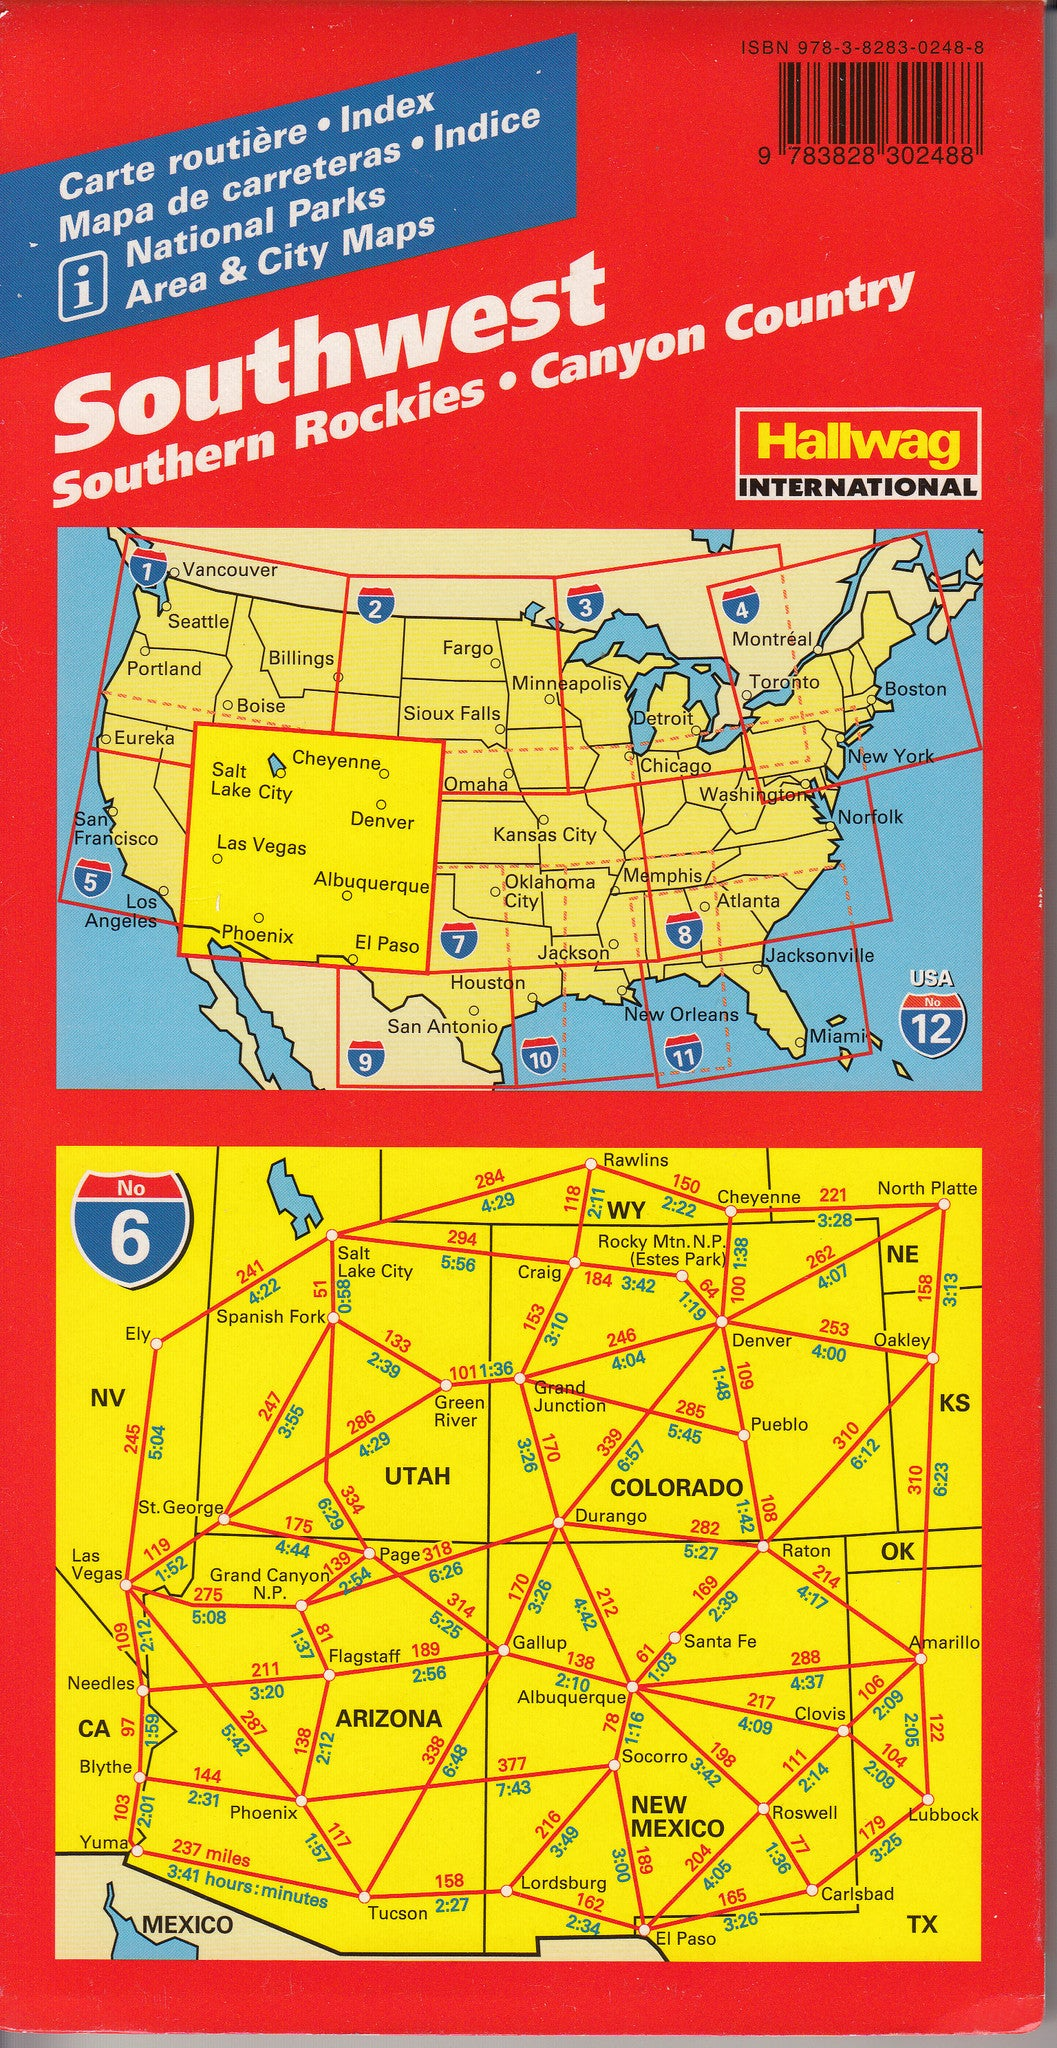 Southwest Maine Map USA  Road Guide Southwest Southern Rockies - Southwest usa highway map